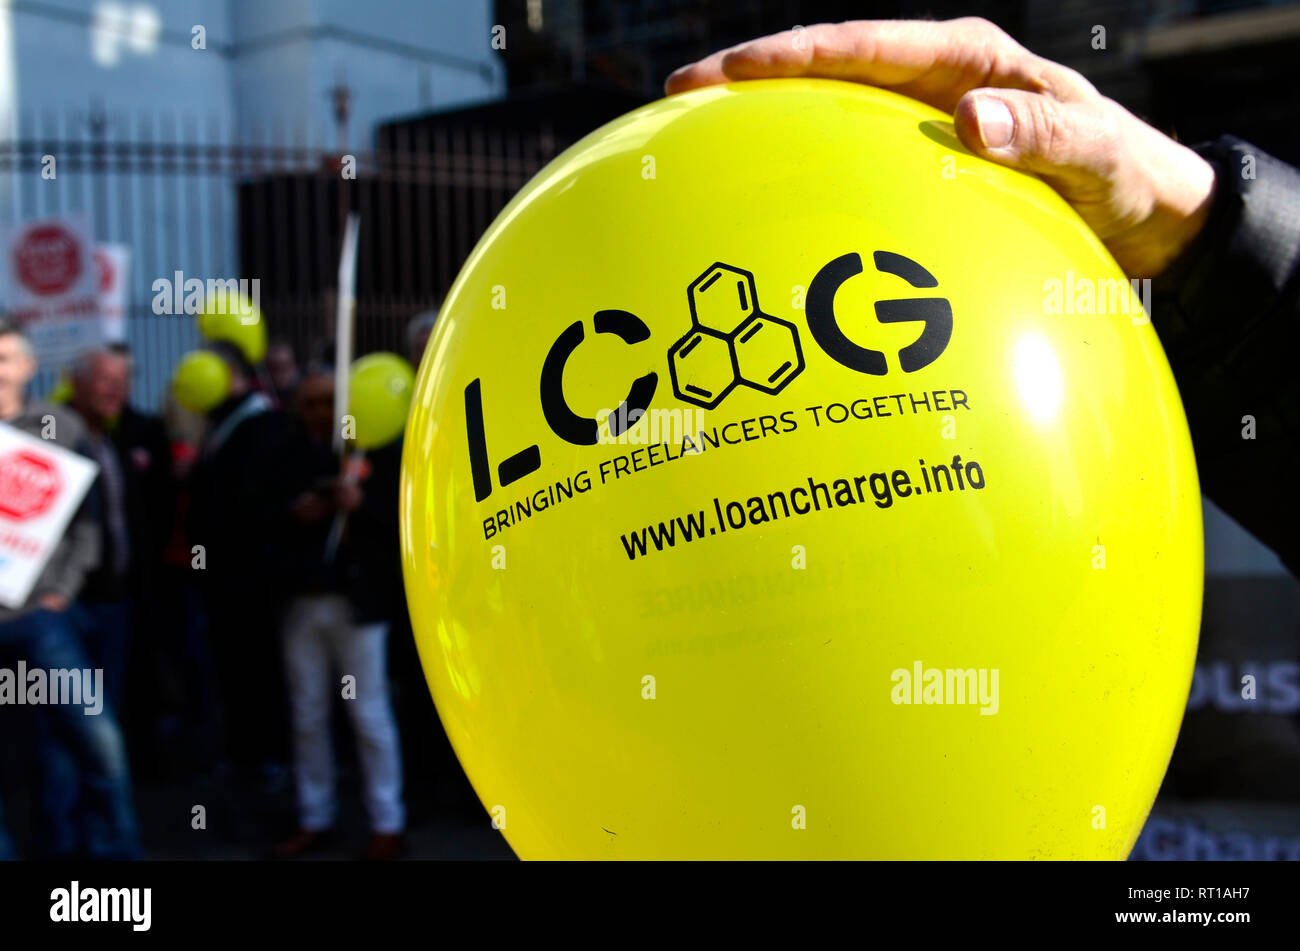 London, 27th Feb. The Loan Charge Action Group - formed to raise awareness of the retrospective tax charge introduced by HM Government in the 2017 Budget demonstrates outside Parliament Credit: PjrNews - Stock Image